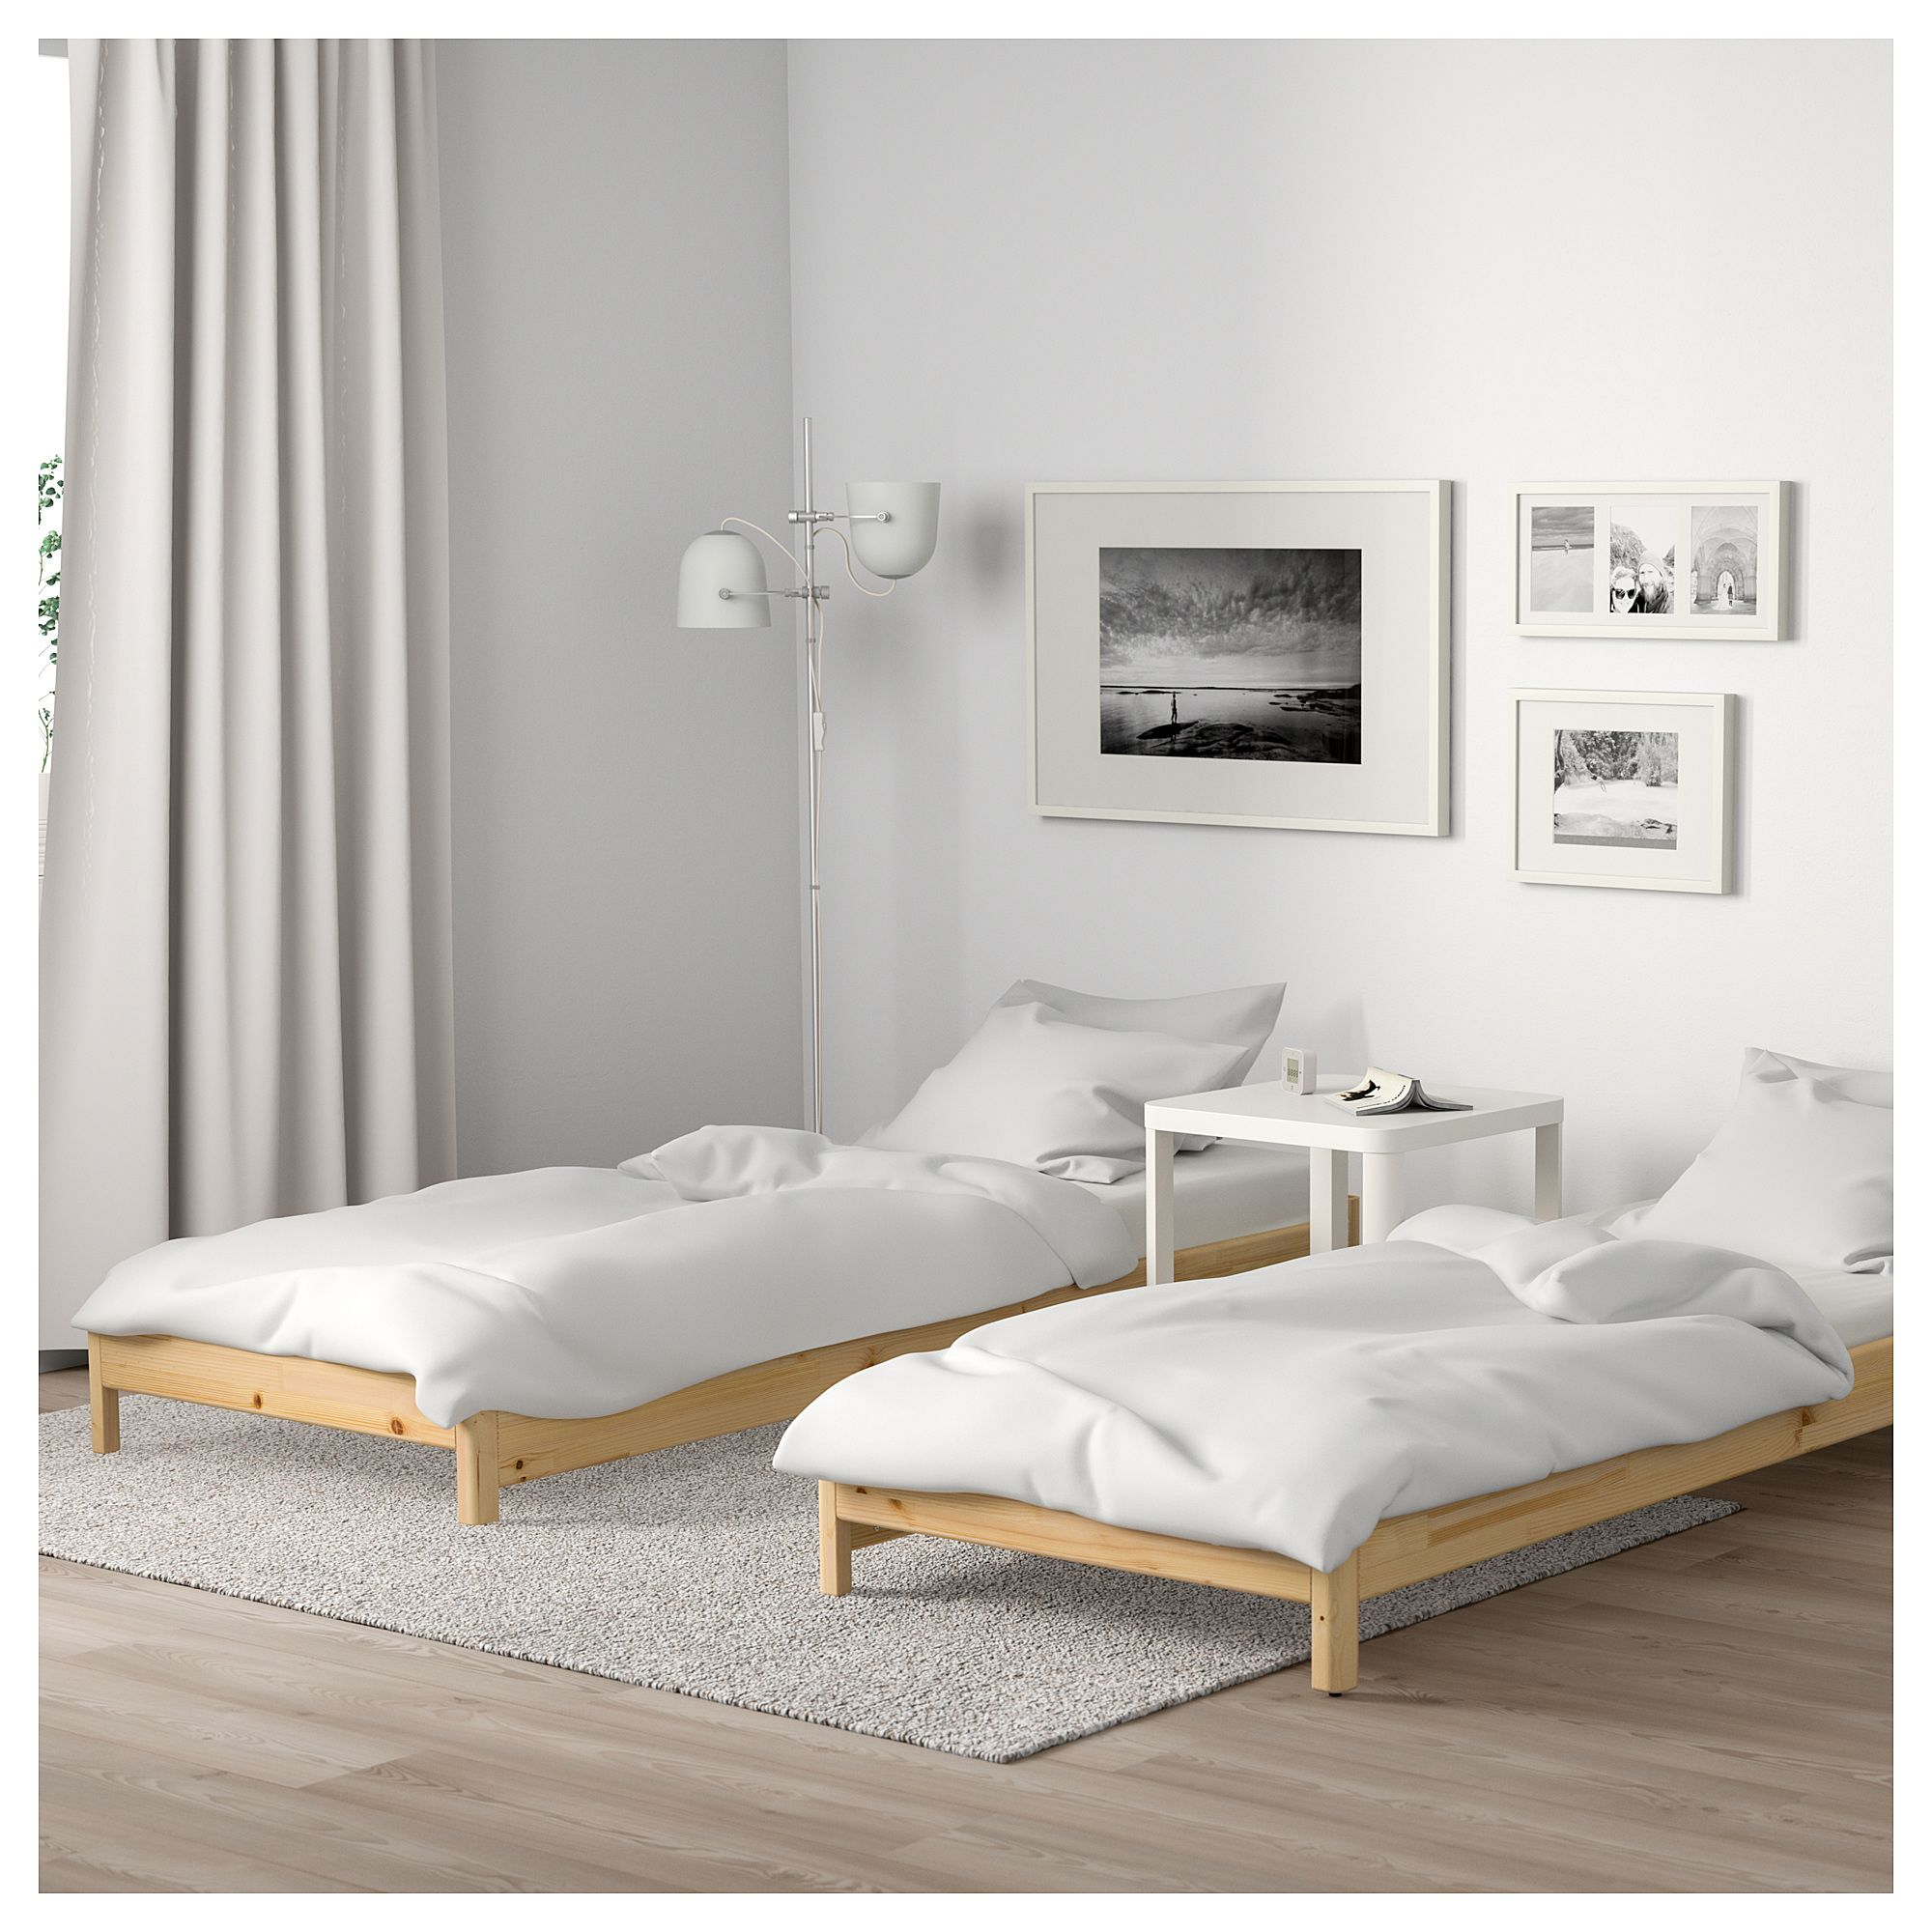 This Stackable Bed From Ikea Is A Brilliant Solution For Small